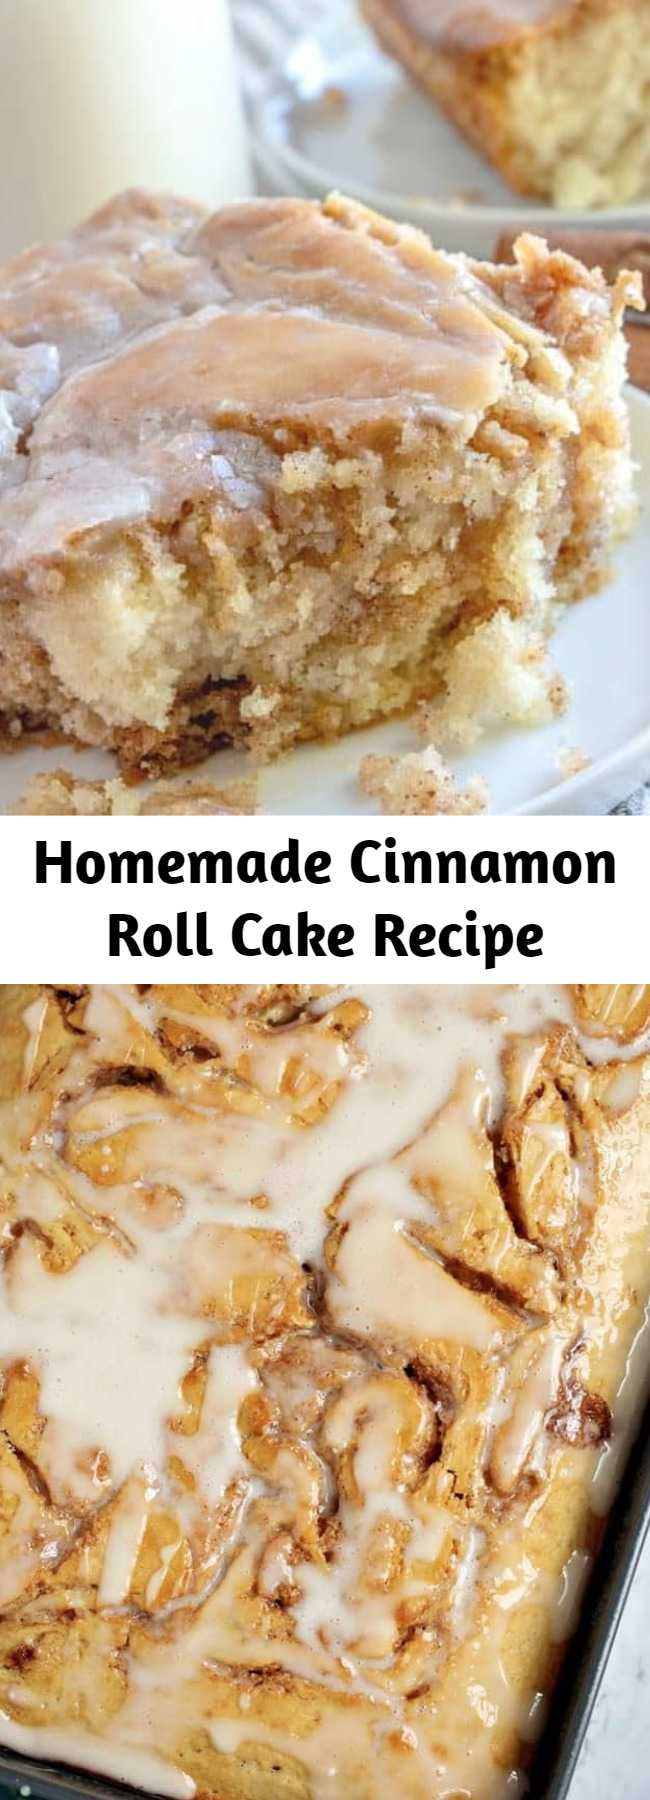 Homemade Cinnamon Roll Cake Recipe - This Homemade Cinnamon Roll Cake dessert has all the flavor of a cinnamon roll but in an easy cake with a vanilla icing drizzled on top! #homemadecakes #cinnamonrolls